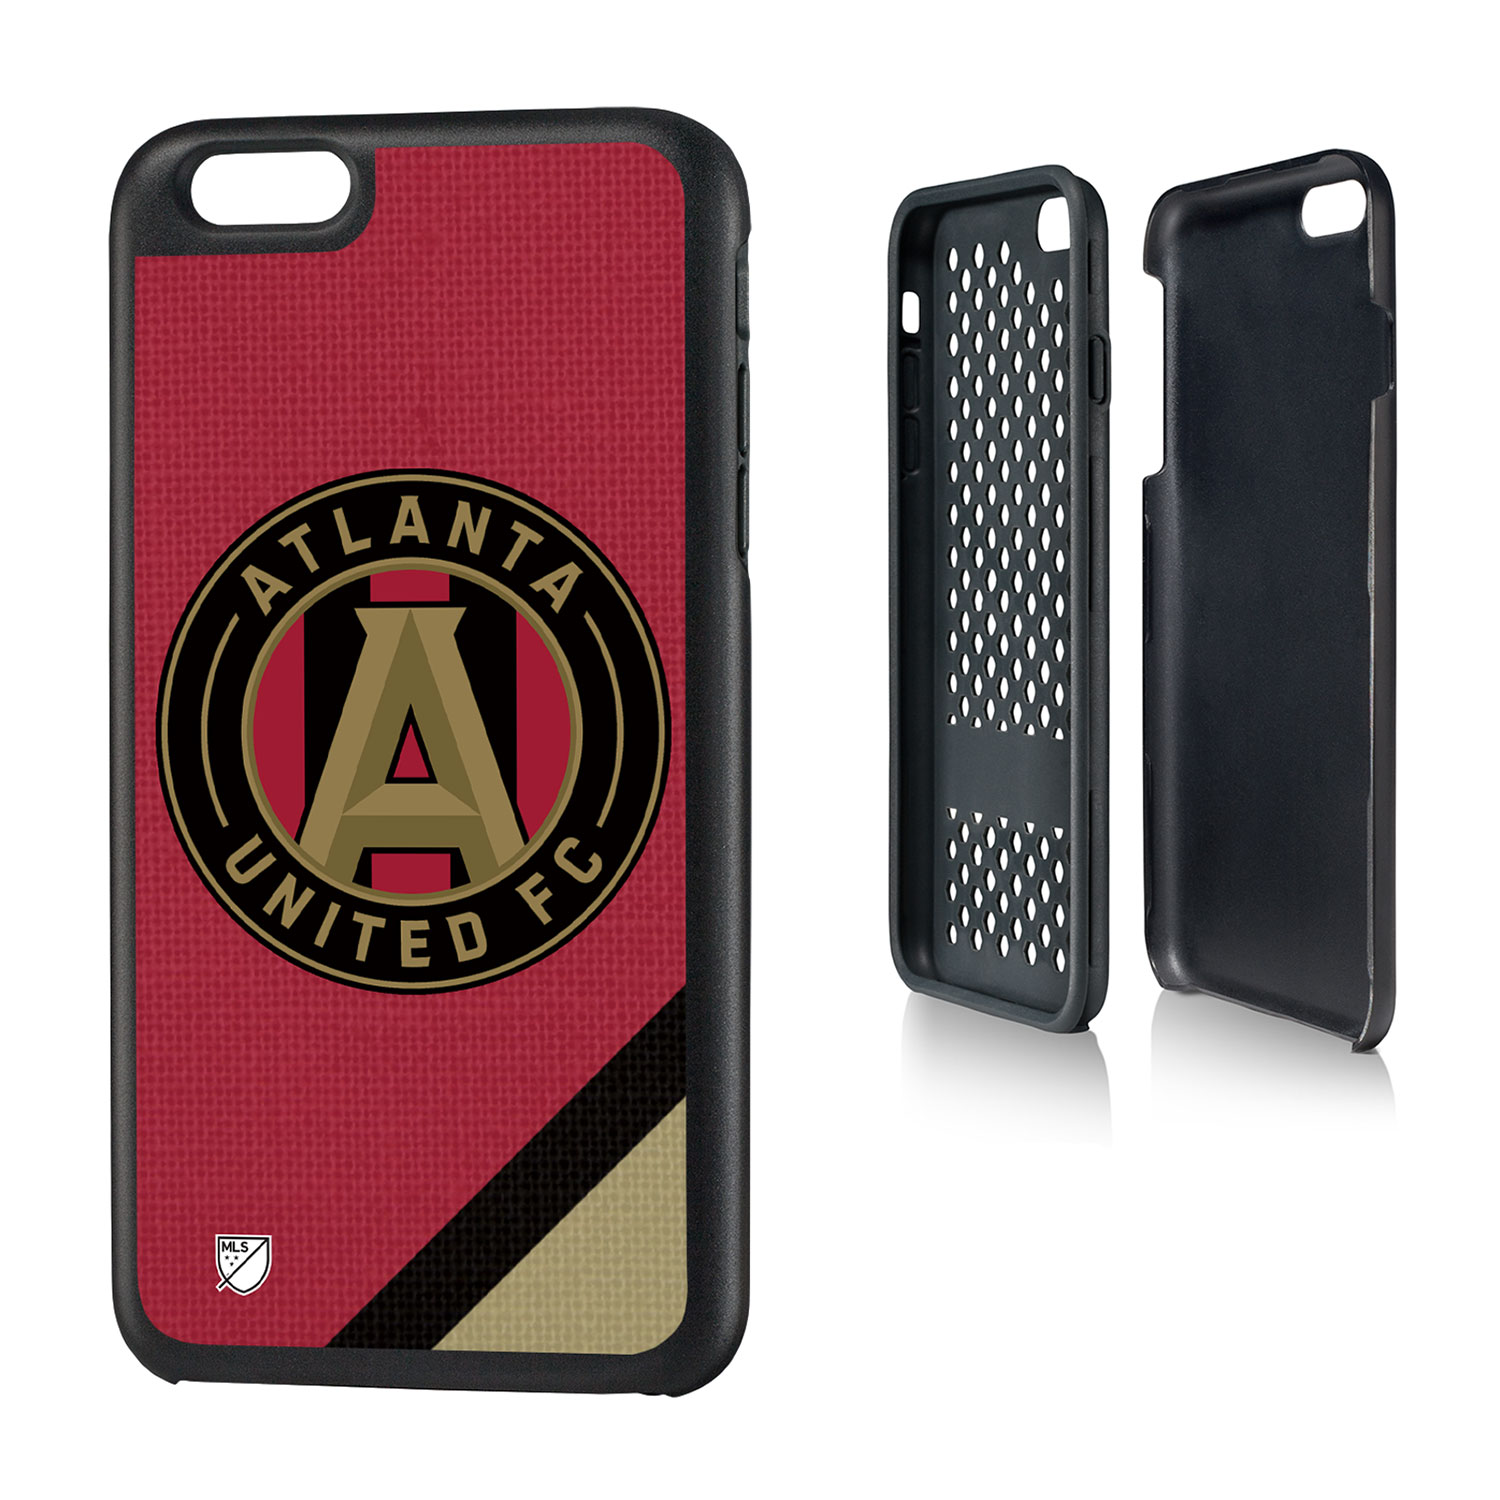 Atlanta United FC ATLUTD Solid Rugged Case for iPhone 6 Plus